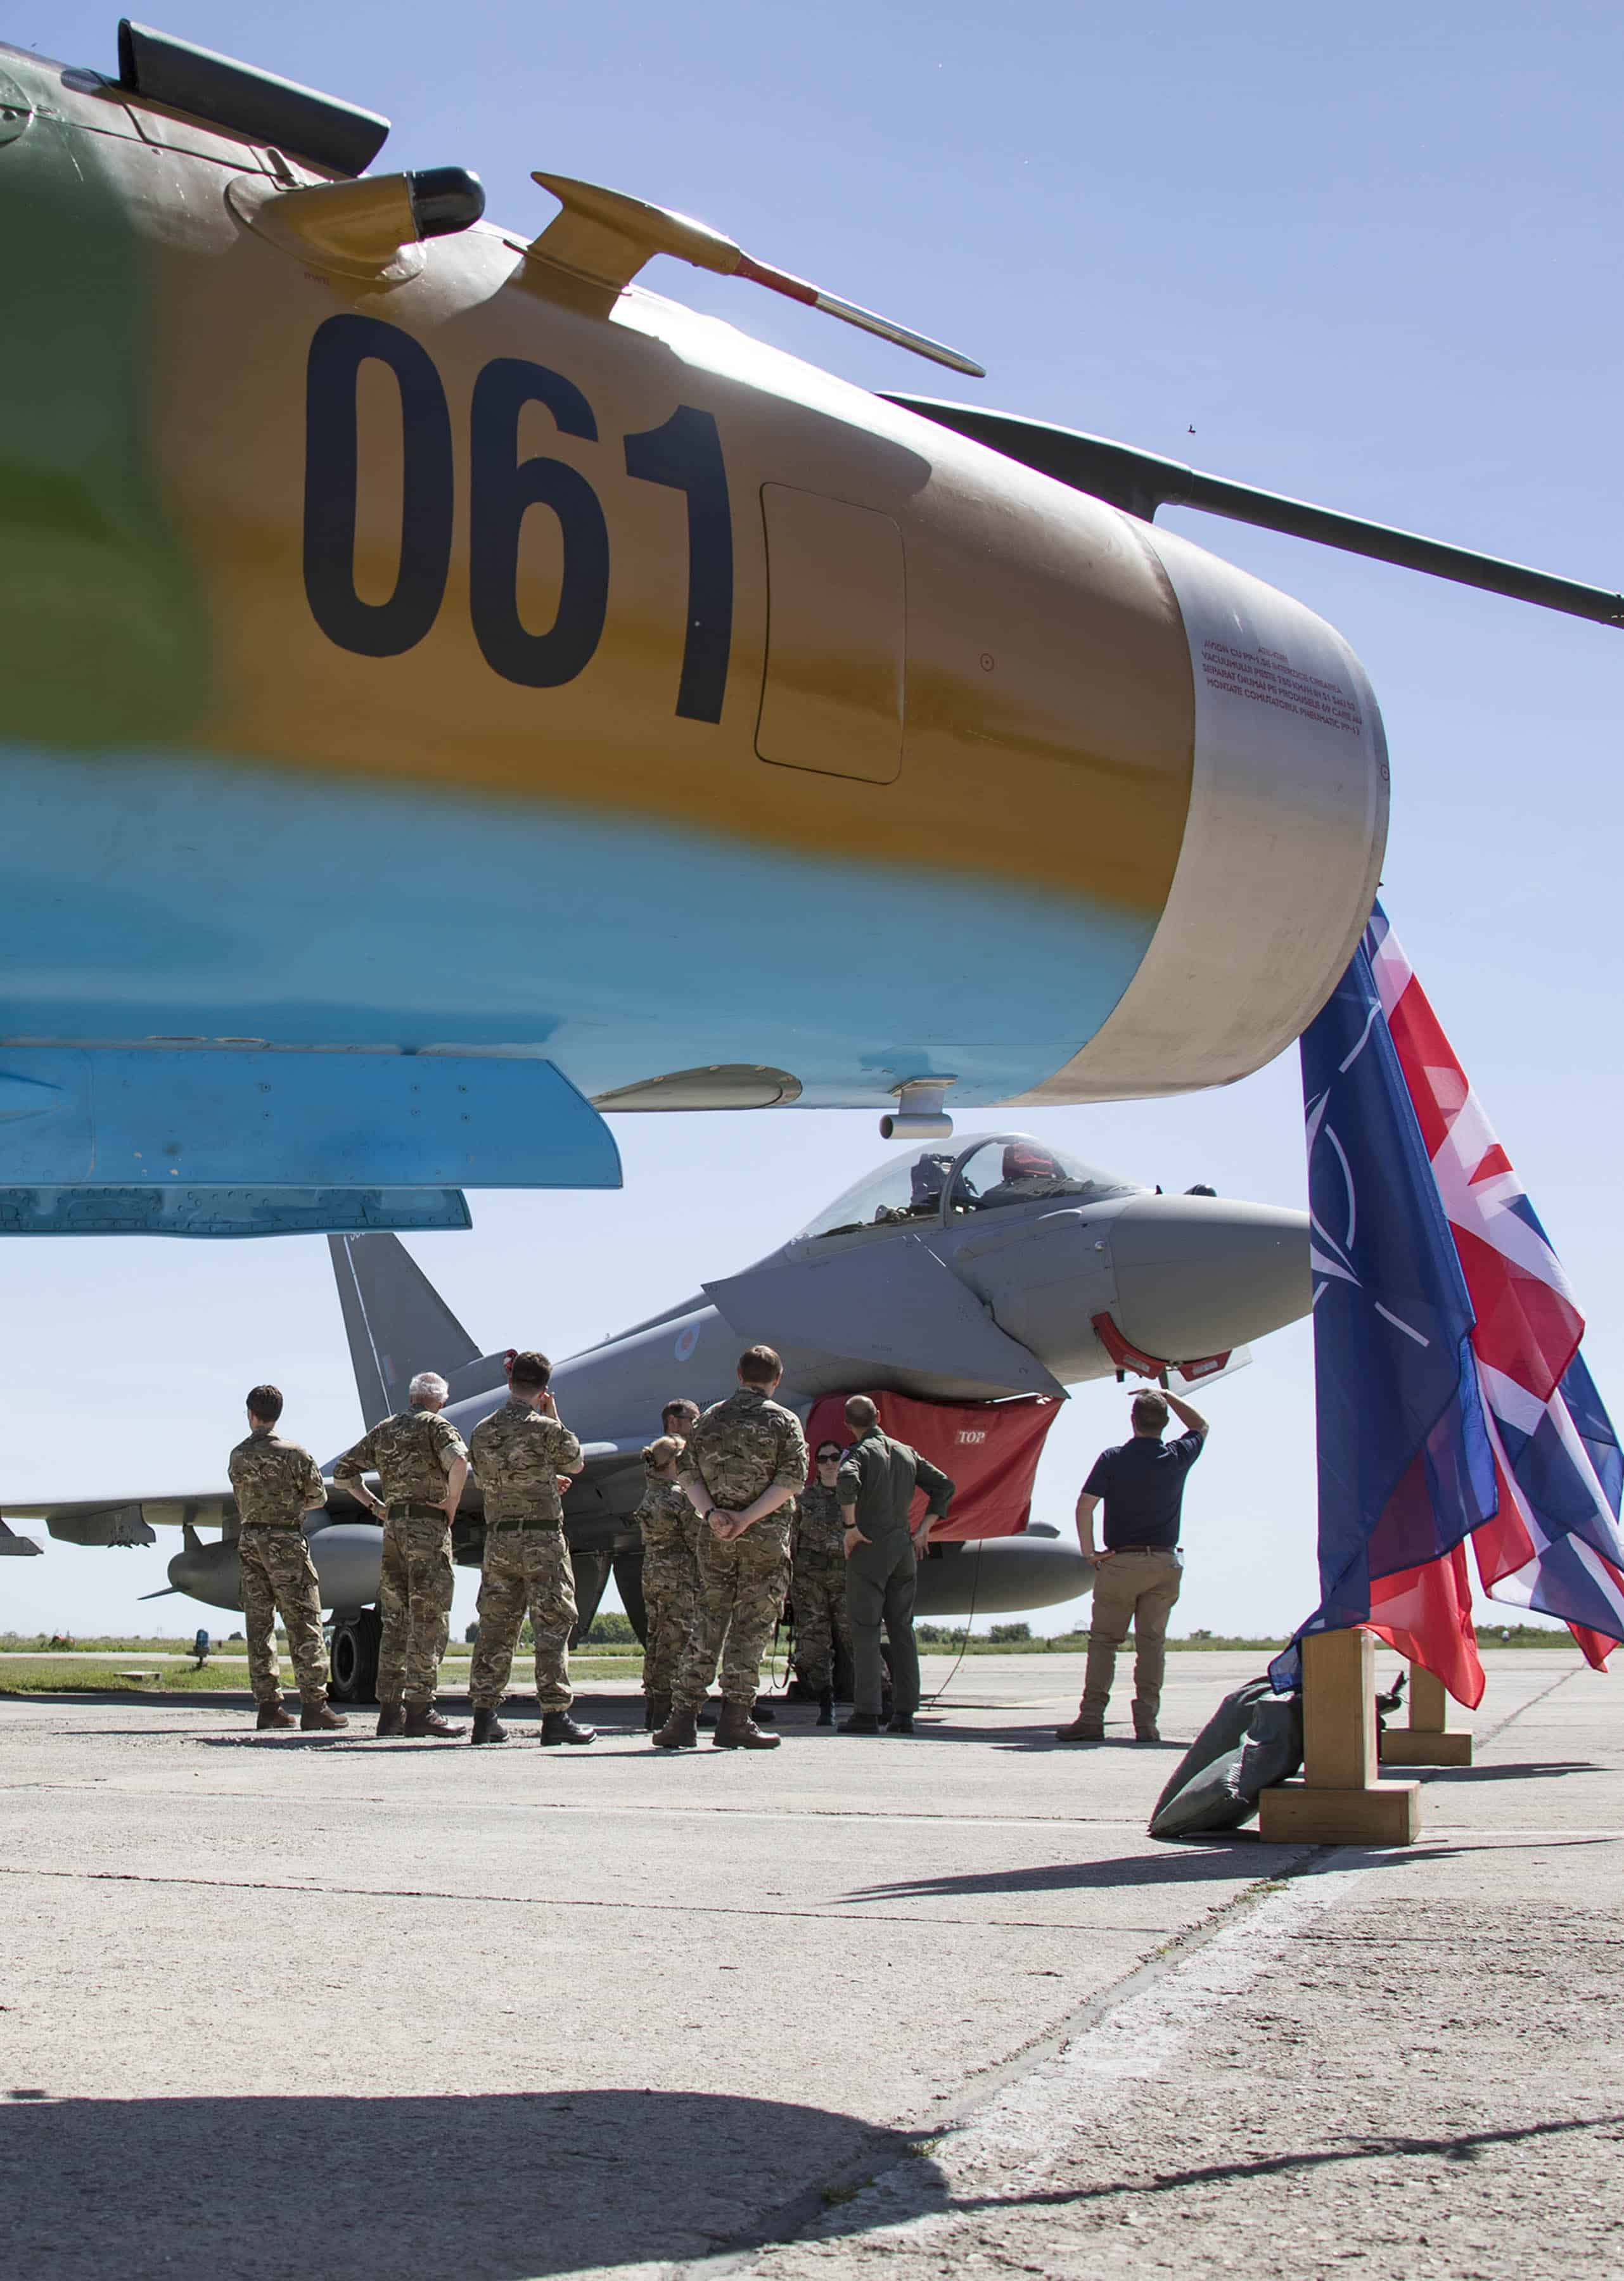 Members of Parliament experience life as a deployed member of the Royal Air Force.